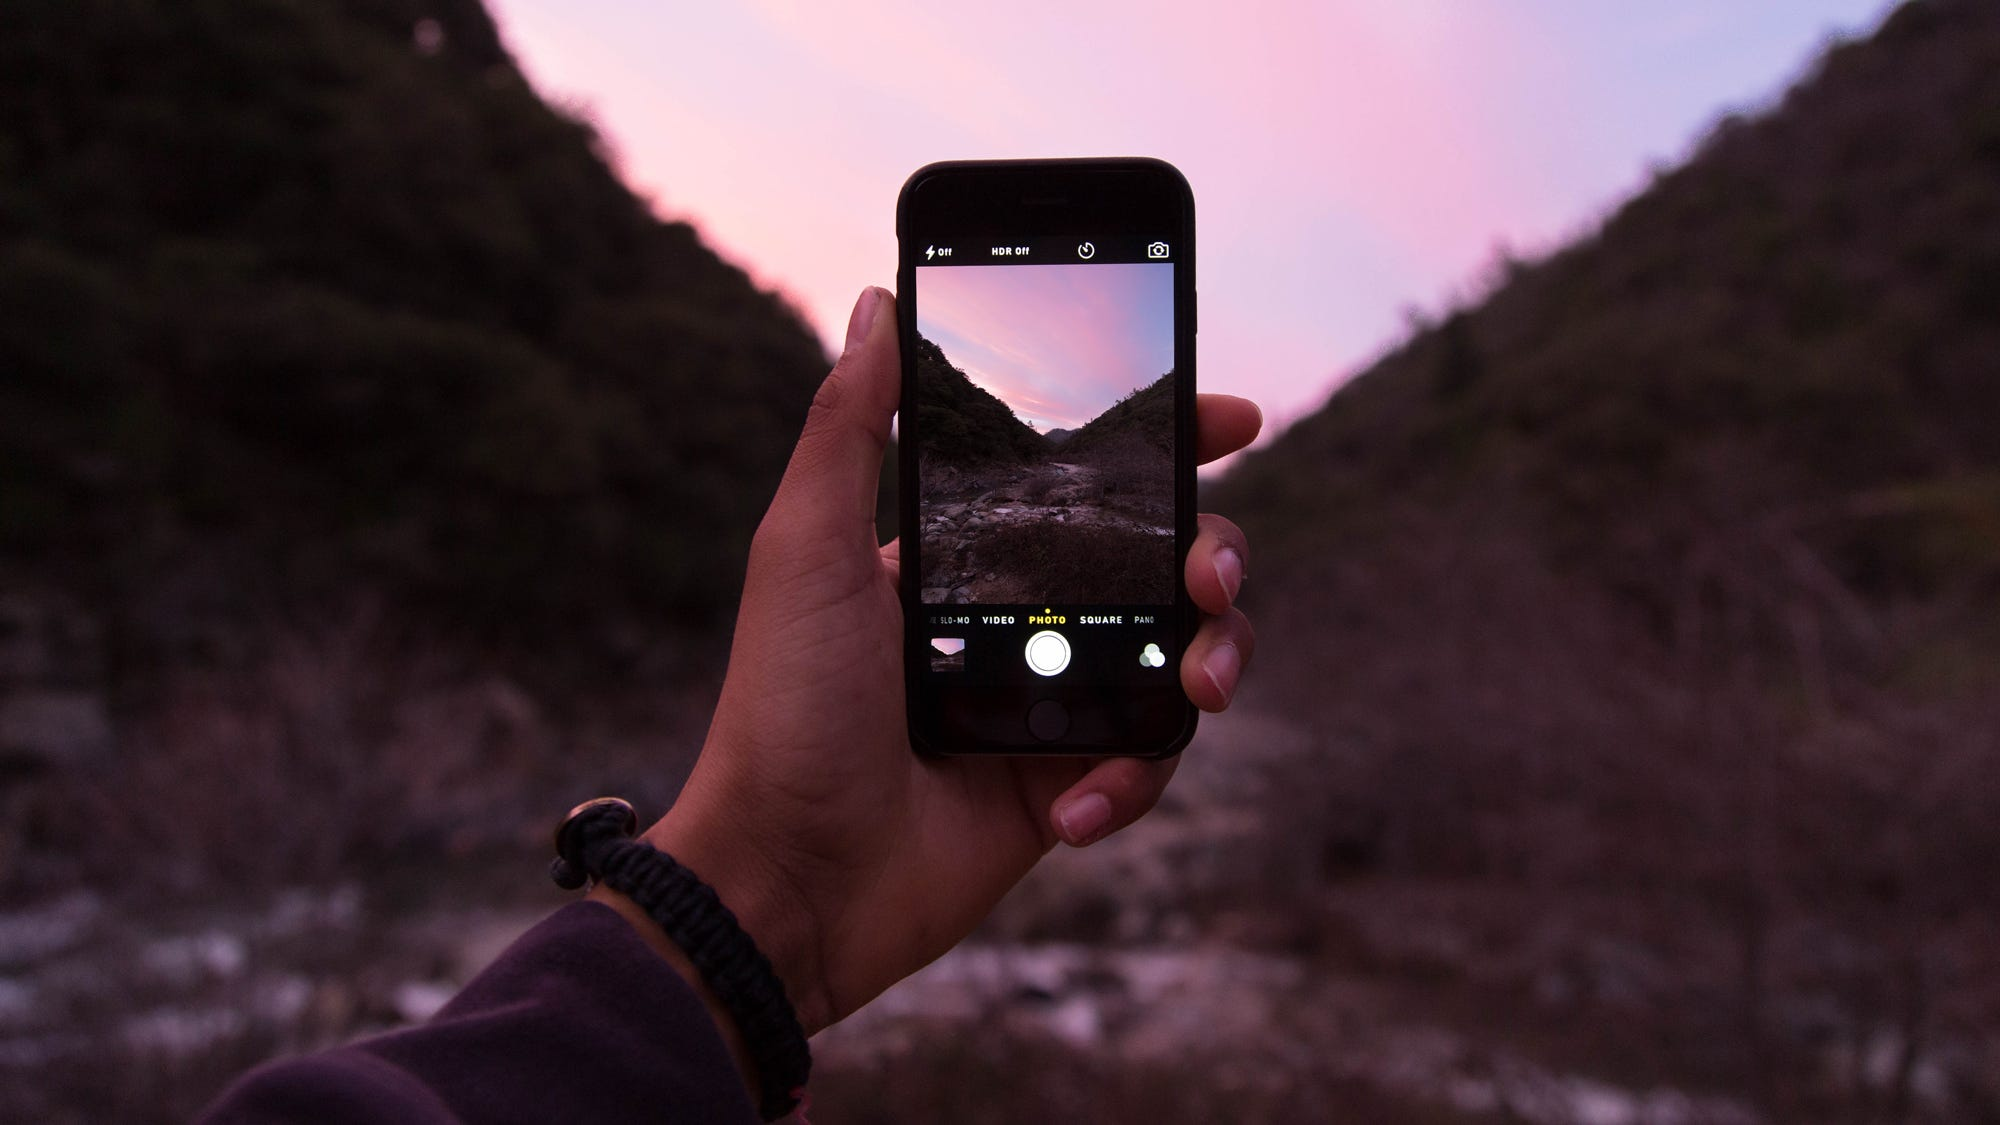 Your IPhone Is A Serious Camera But To Make The Most Of It You Need Use Some Third Party Apps Built In And Photos App Are Fine